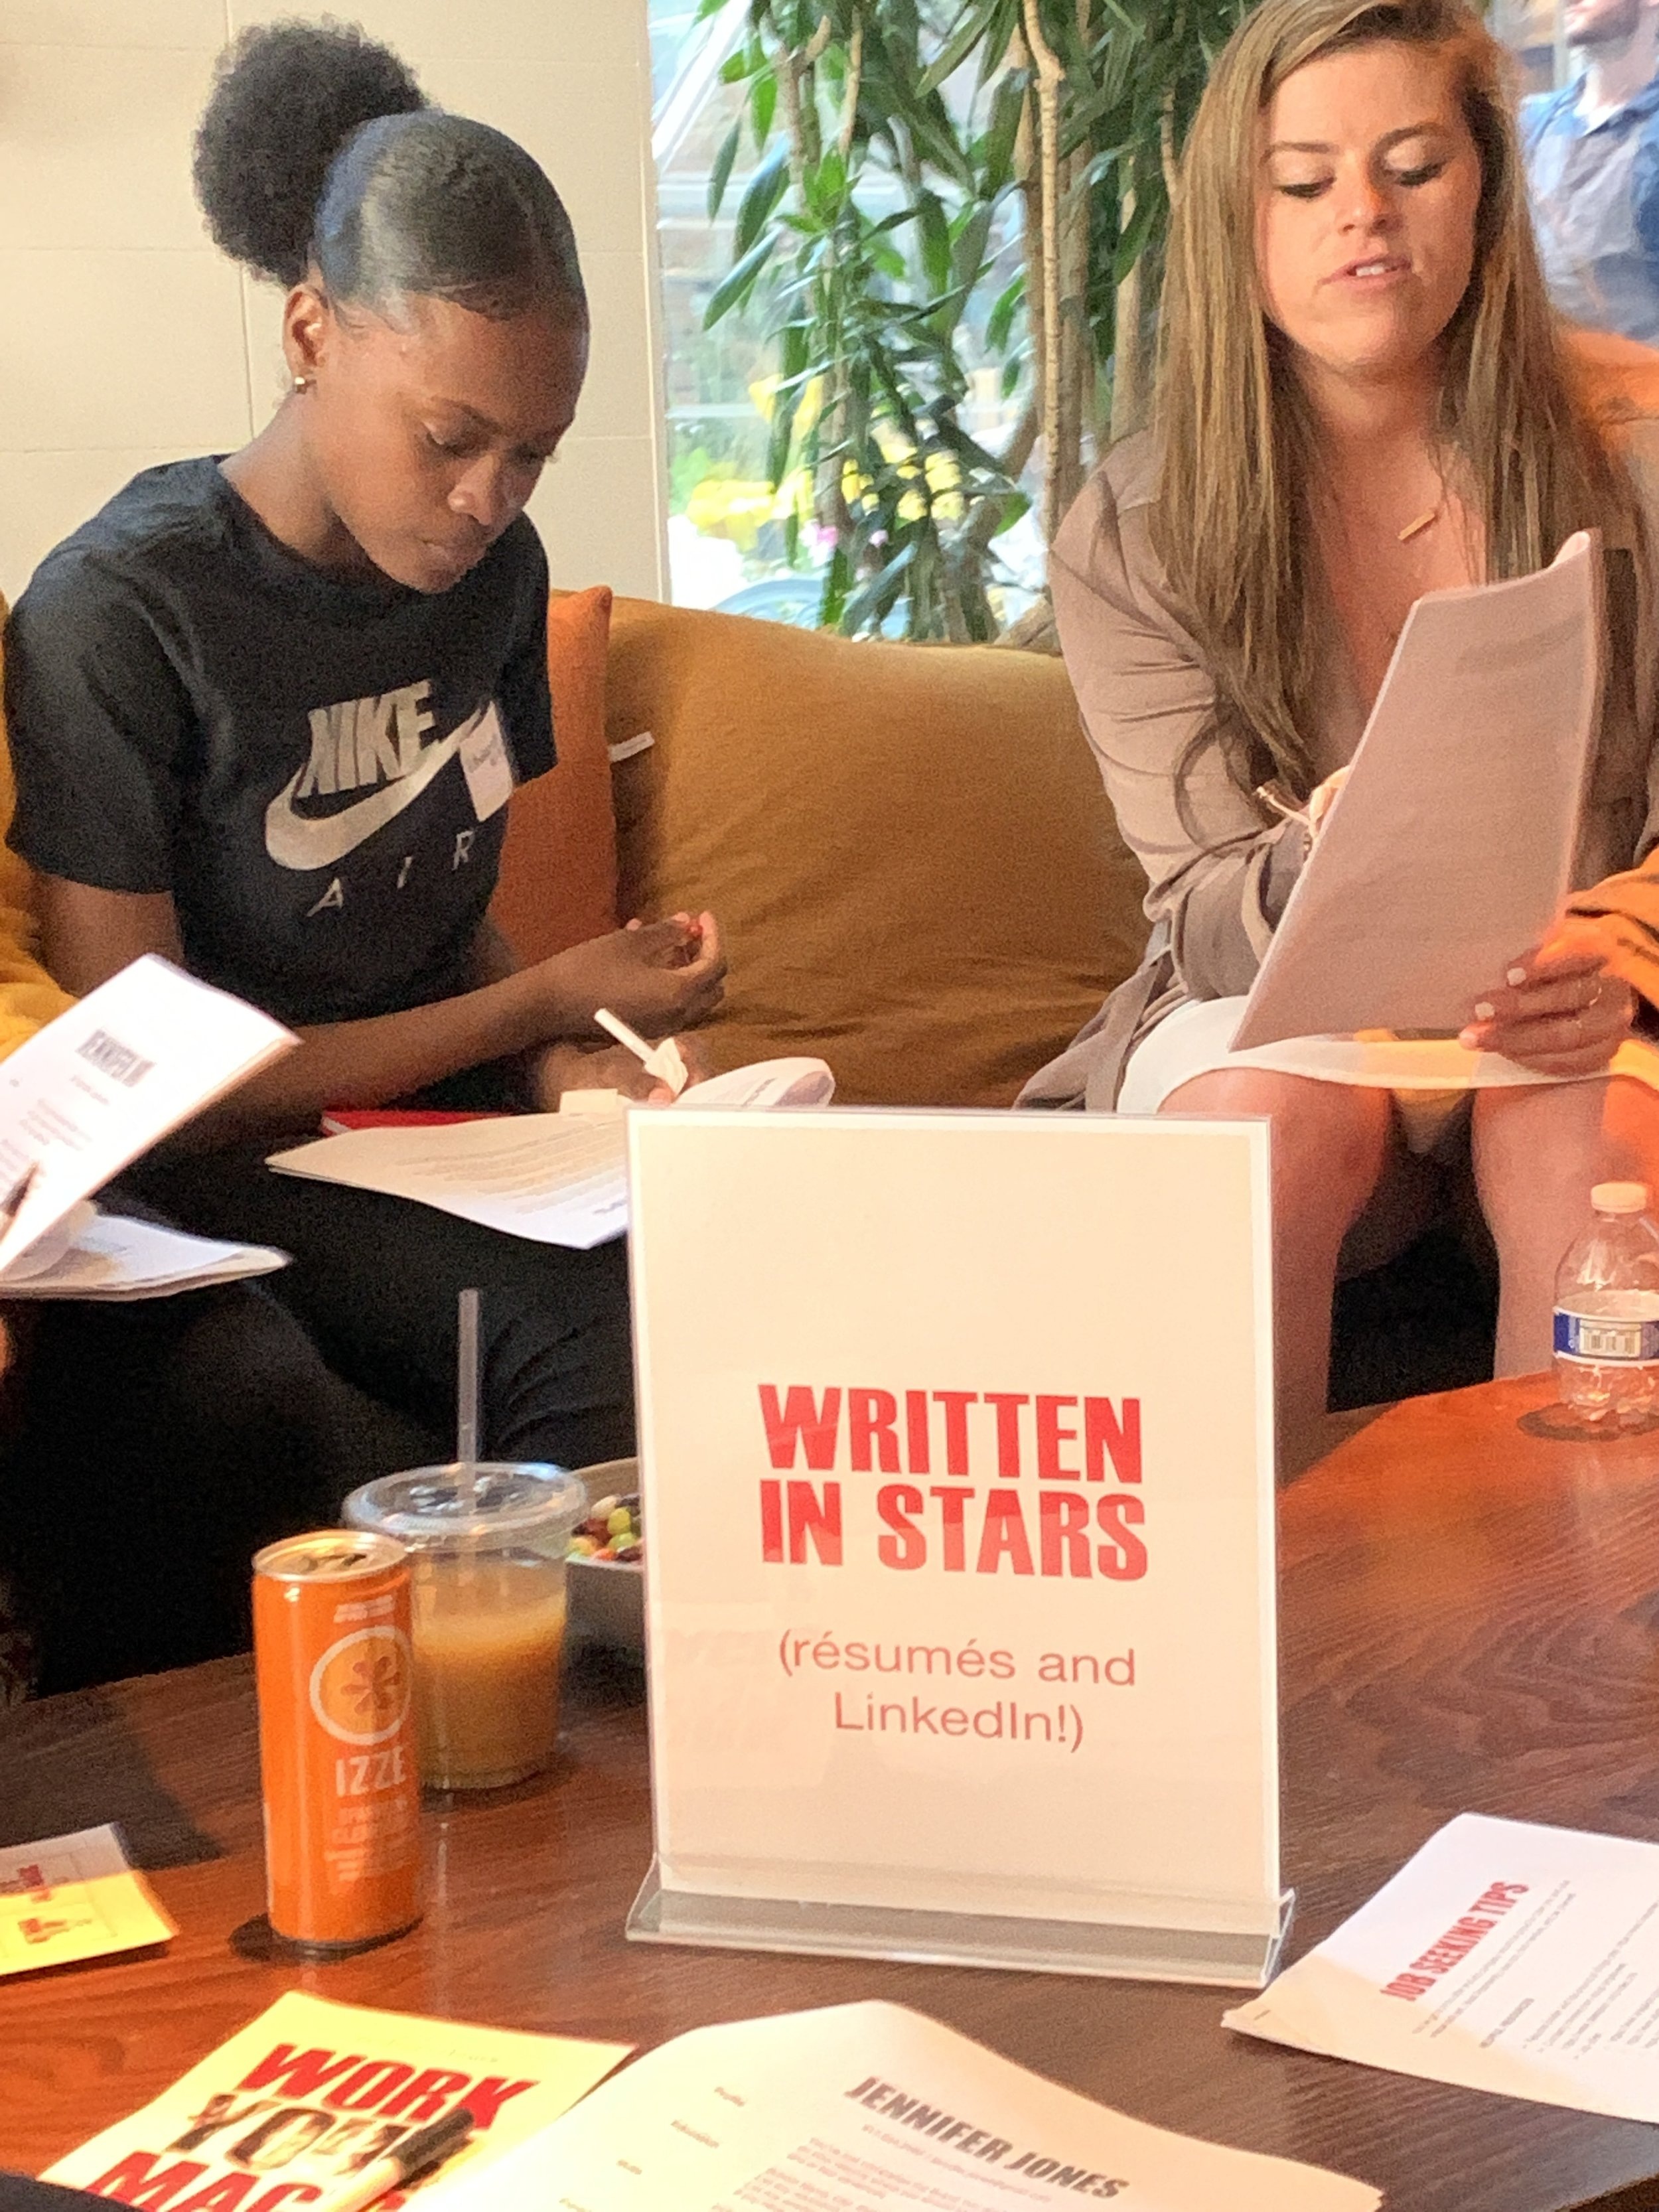 A volunteer from Ellevest runs the Written In Stars resume writing workshop with a group of Day of Empowerment attendees.